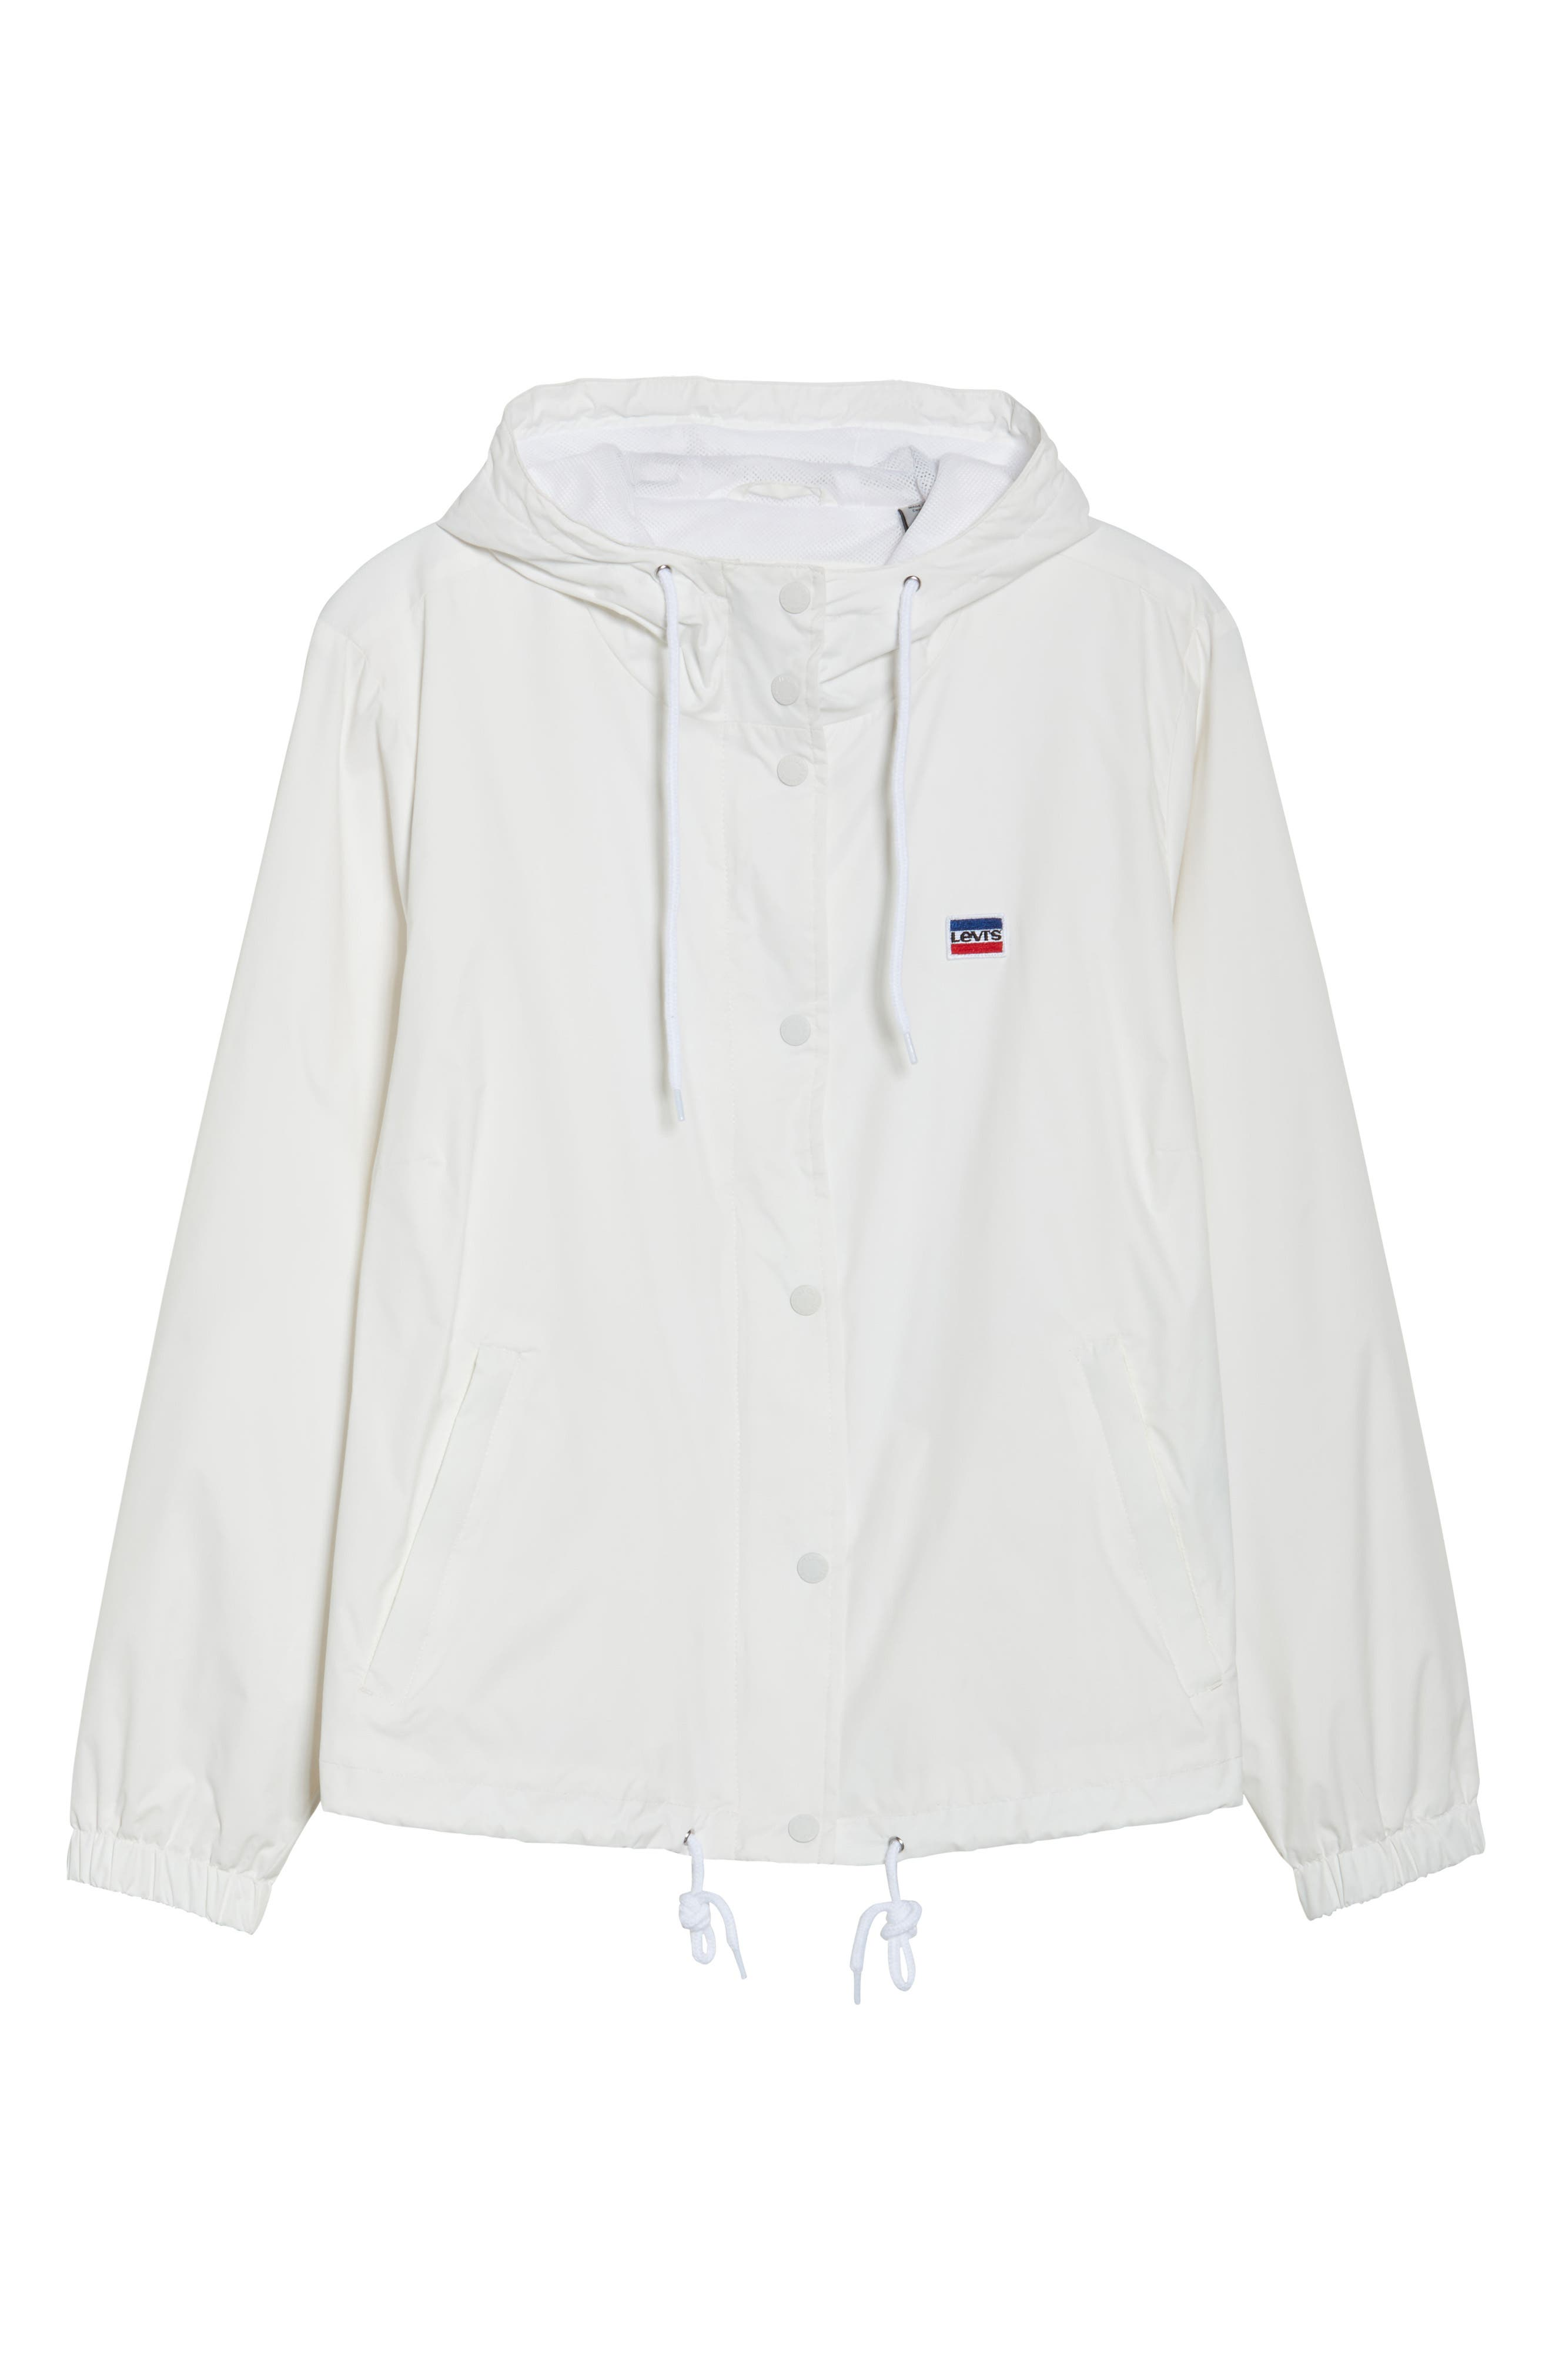 Retro Hooded Coach's Jacket,                             Alternate thumbnail 17, color,